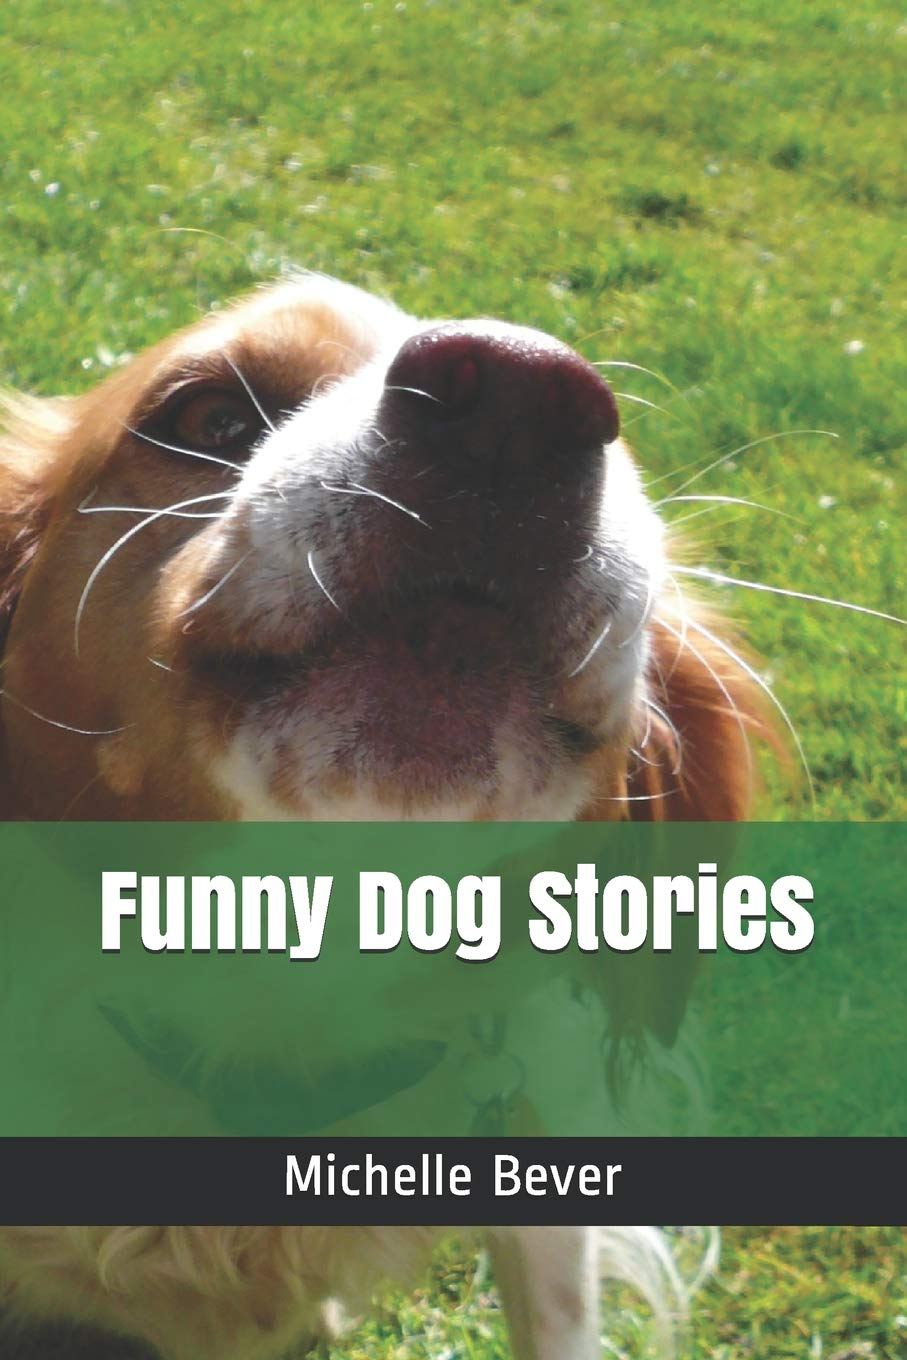 Funny Dog Stories: Michelle Bever: 9781728713175: Amazon com